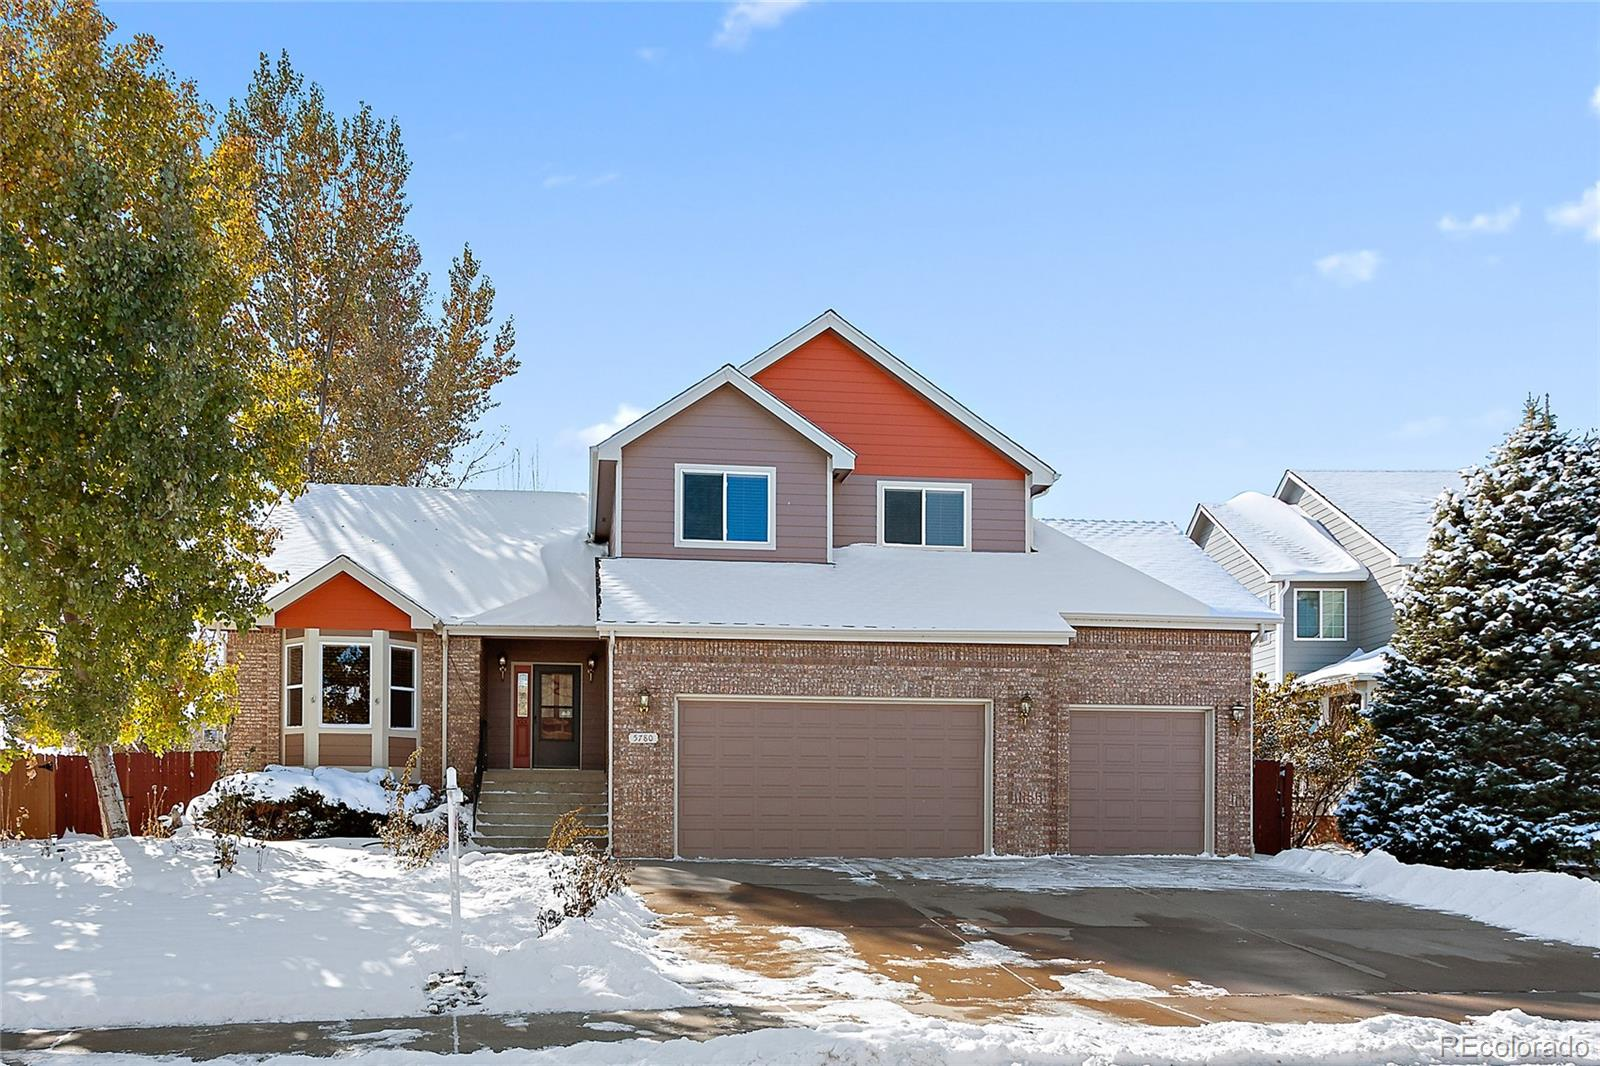 MLS# 5935197 - 2 - 5780 E Wetlands Drive, Frederick, CO 80504